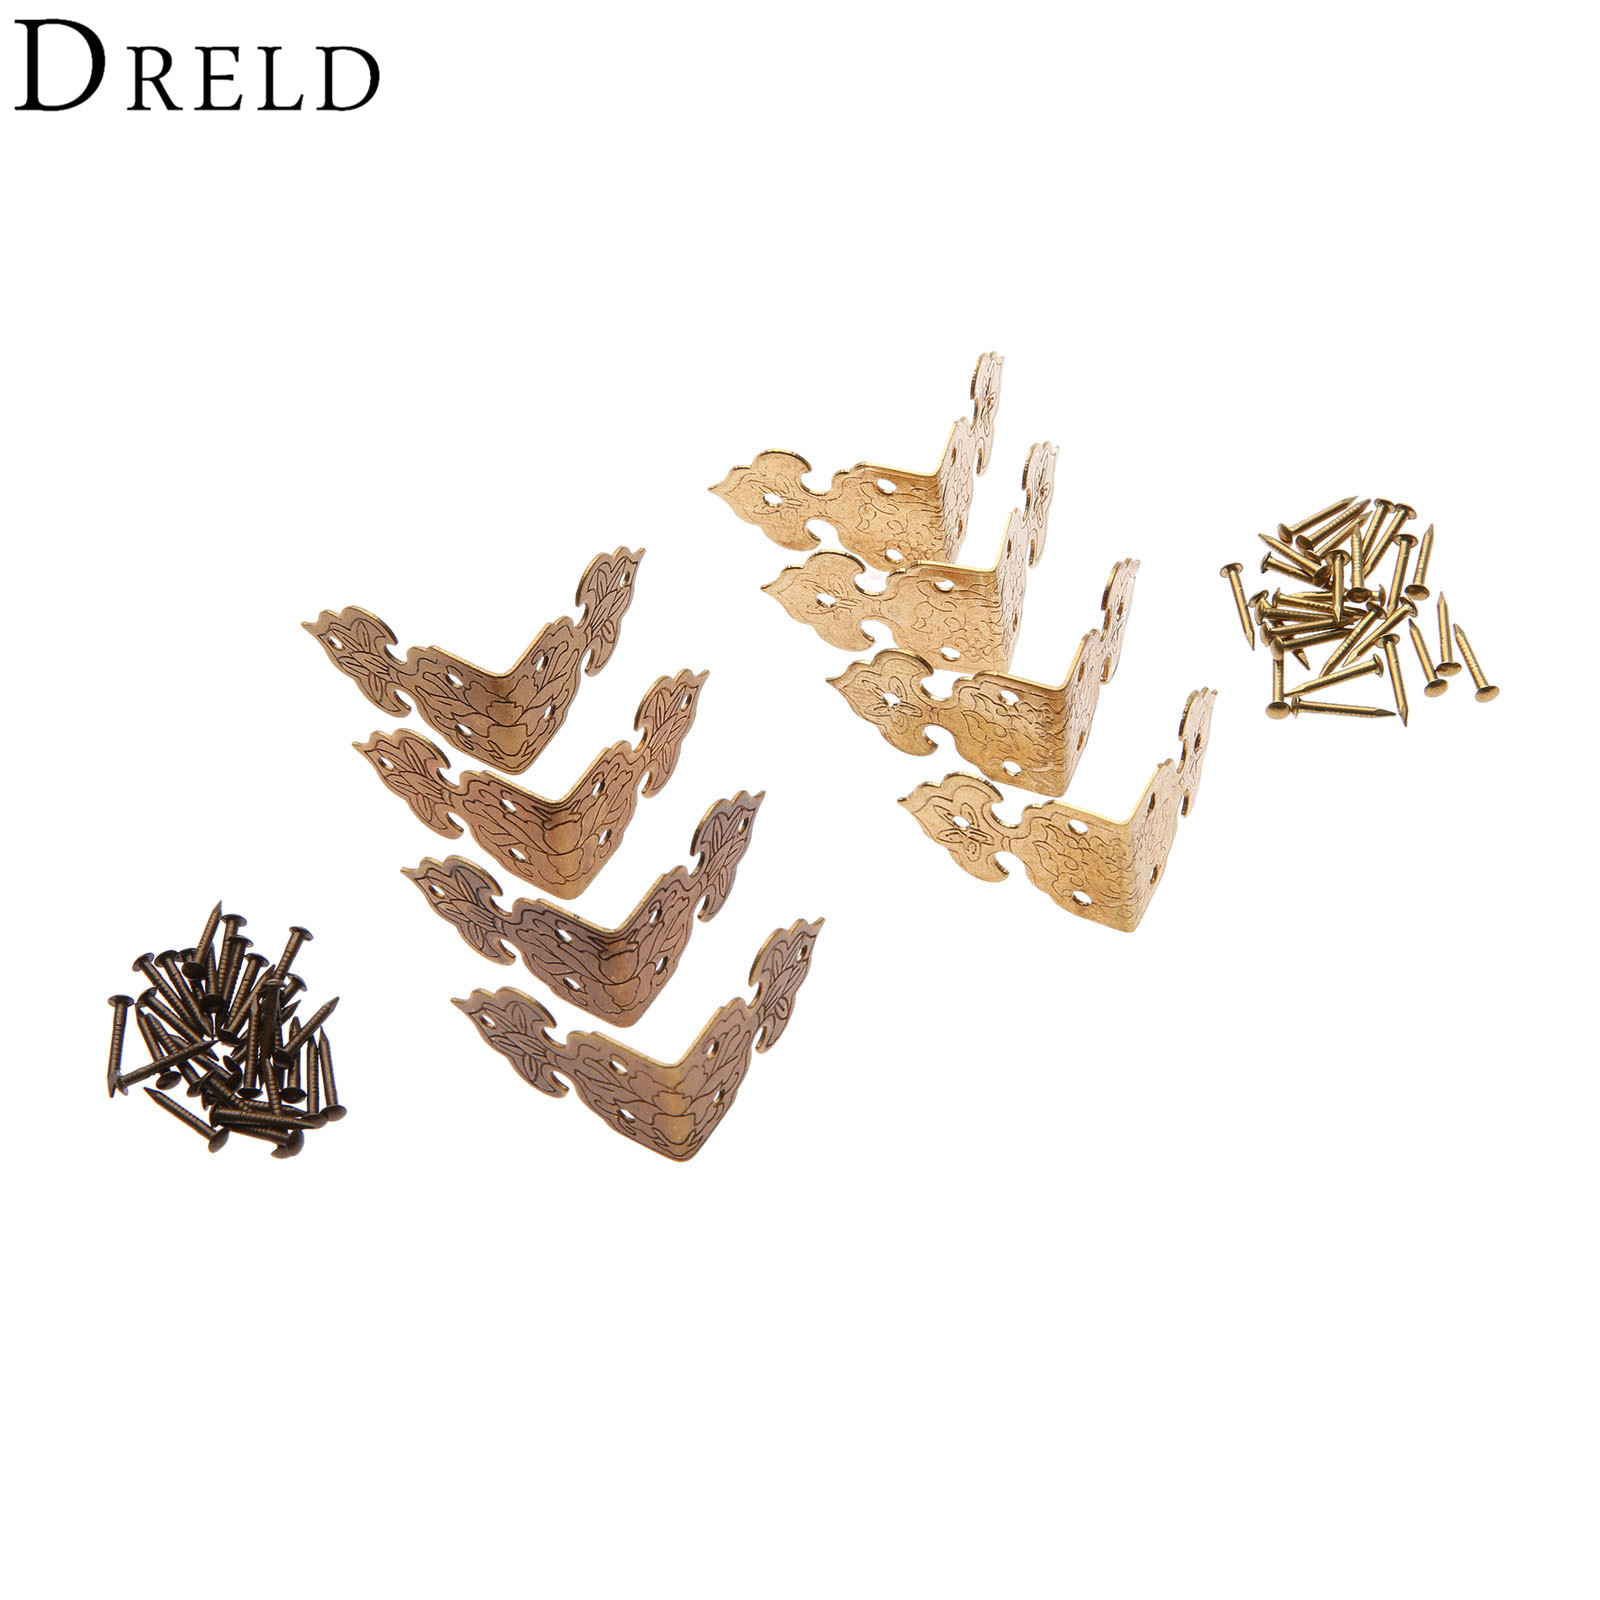 DRELD 4Pcs Brass Wood Box Feet Leg Corner Protector Chinese Furniture Hardware Metal Crafts Decorative Bracket for Cabinet Trunk